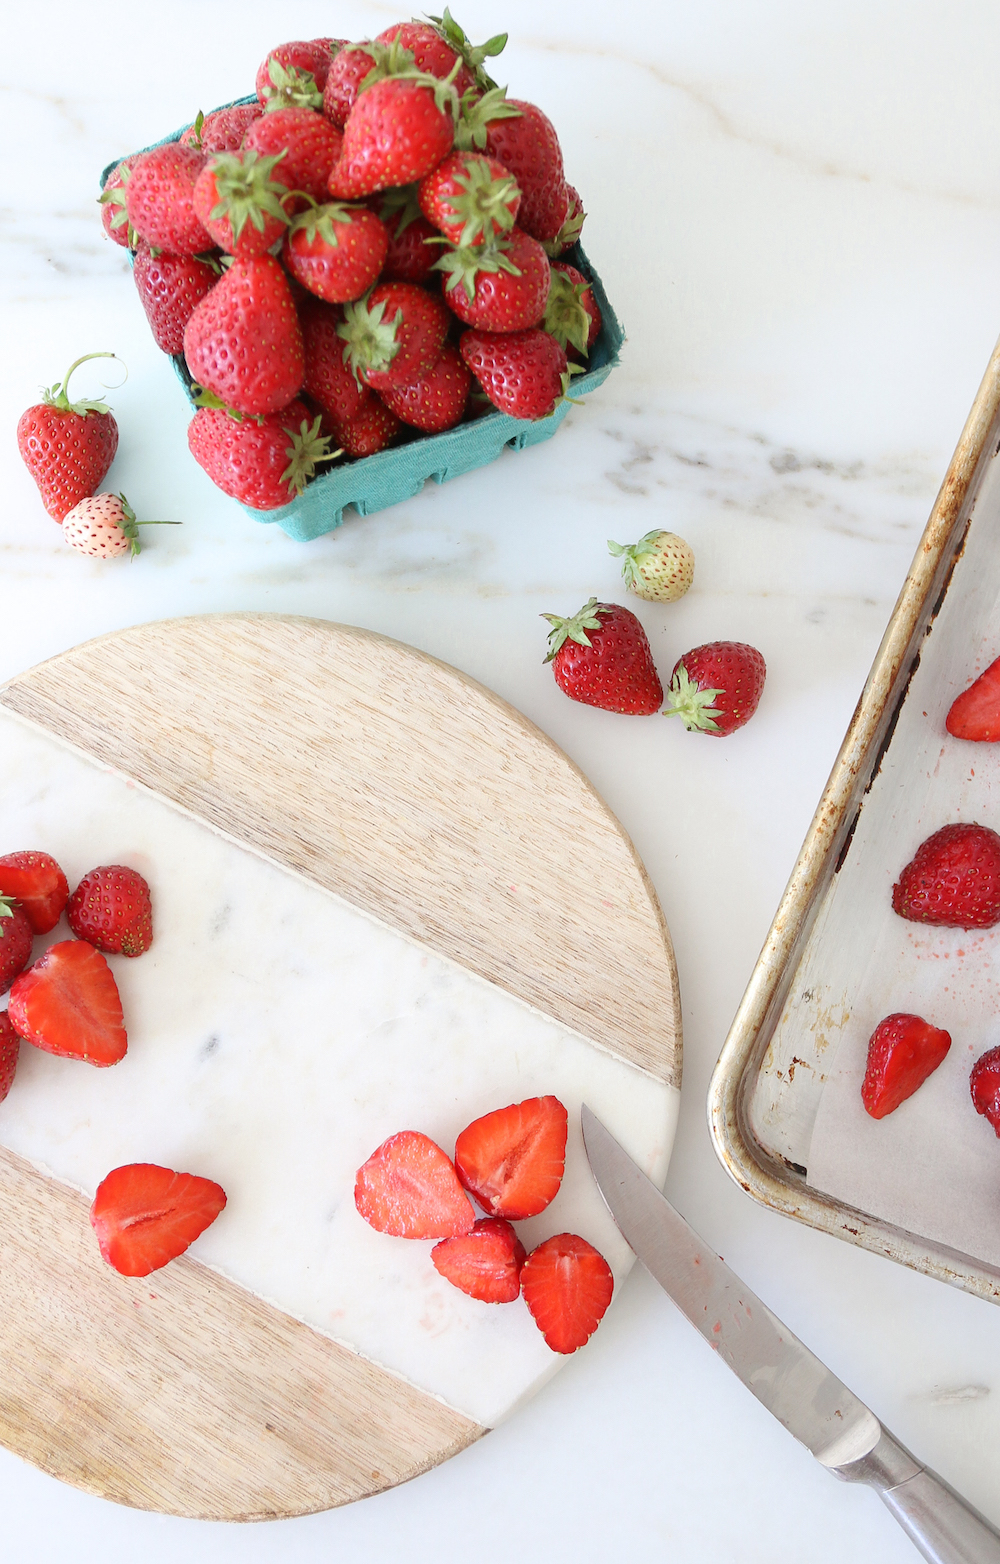 Fresh Local Strawberries Almond Milk Recipe DIY Monika Hibbs